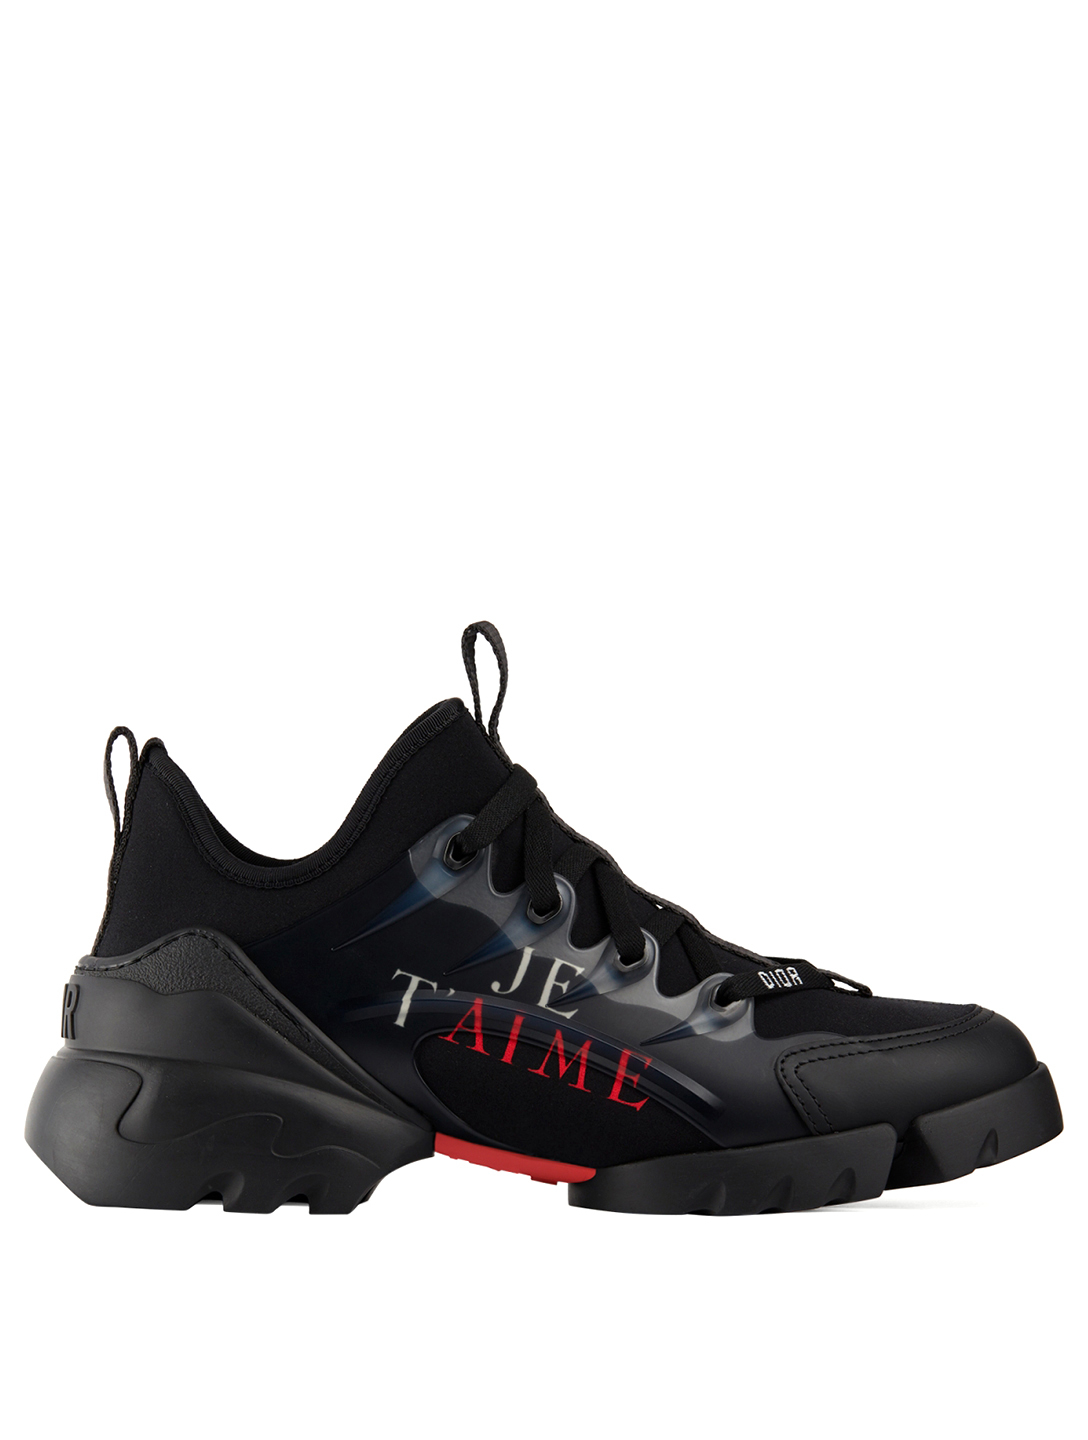 DIOR D-Connect Dioramour Technical Fabric Sneakers Women's Black